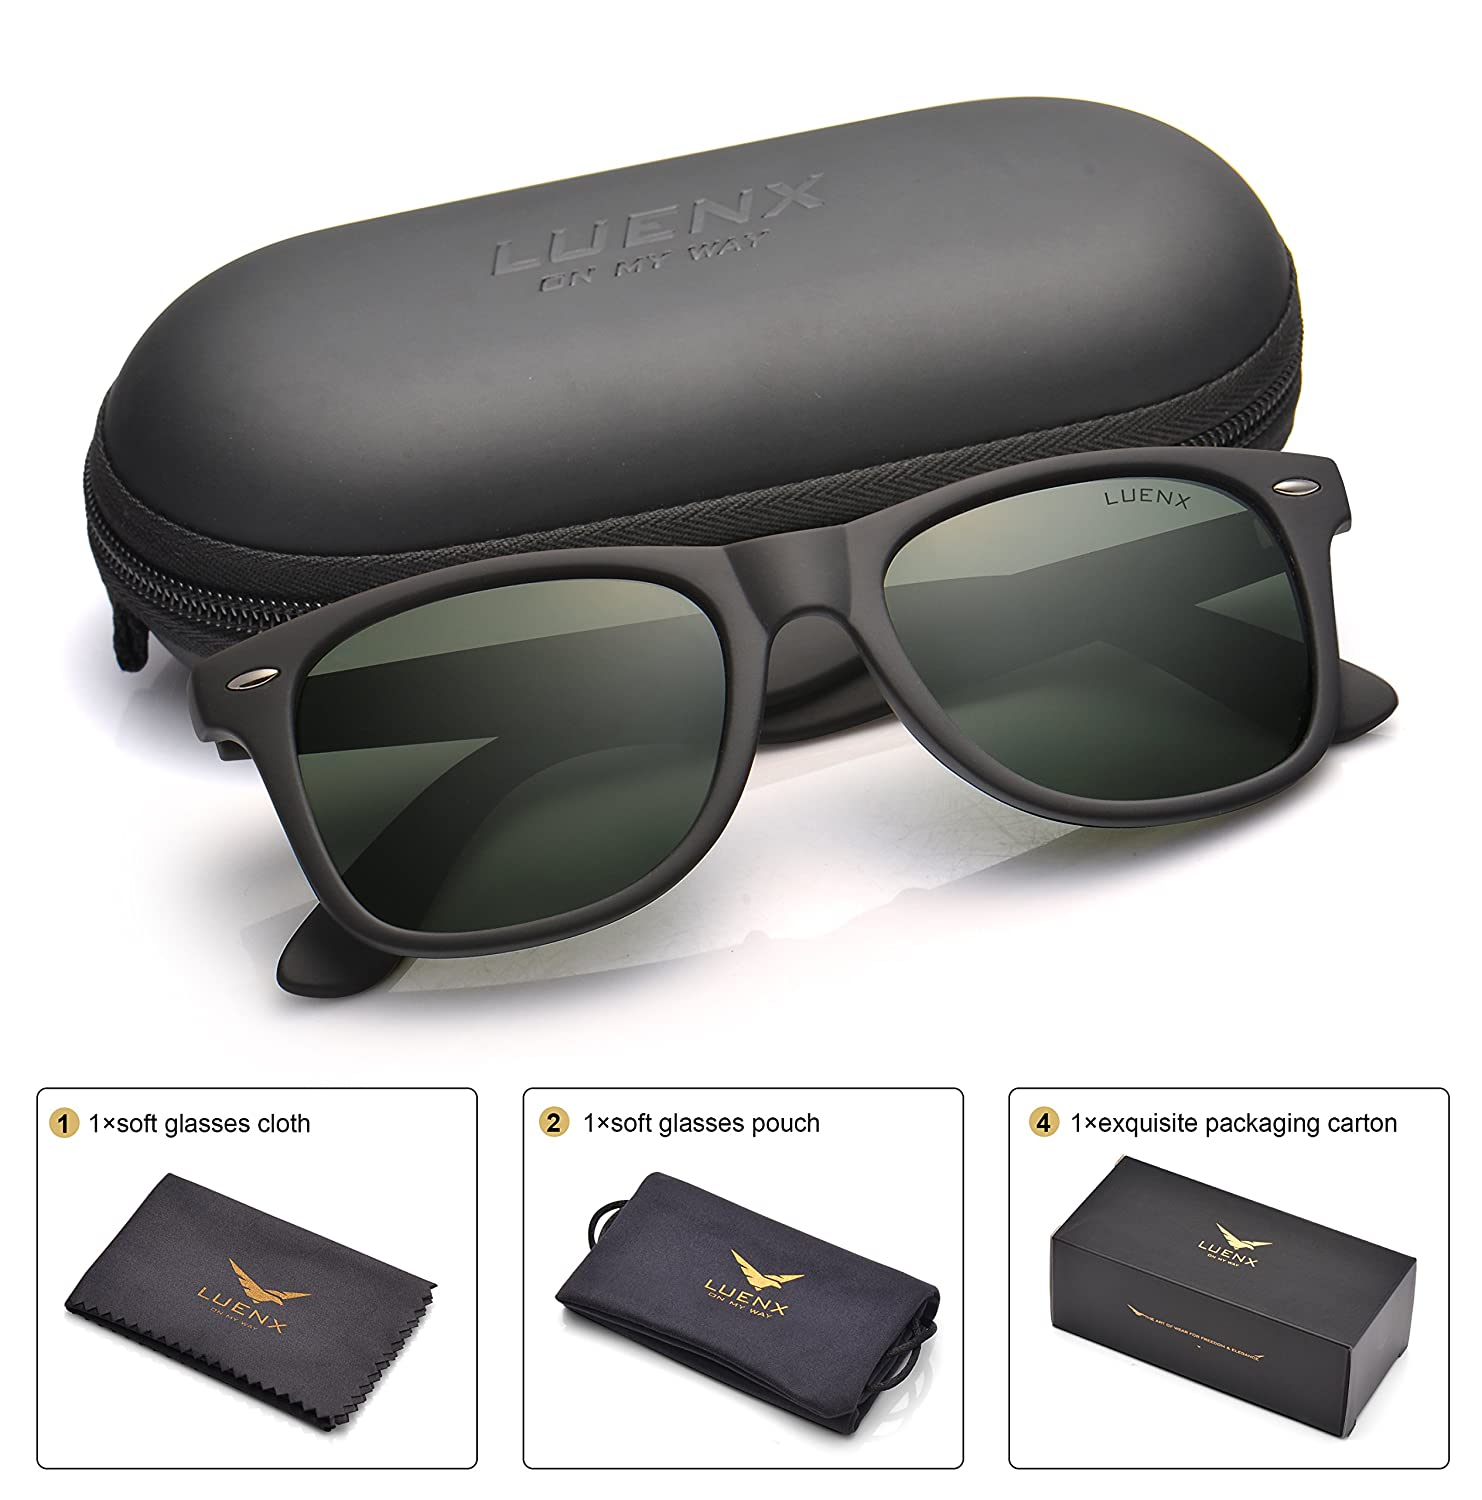 Mens Wayfarer Sunglasses Polarized Womens: UV 400 Protection,by LUENX with Case 2508-13